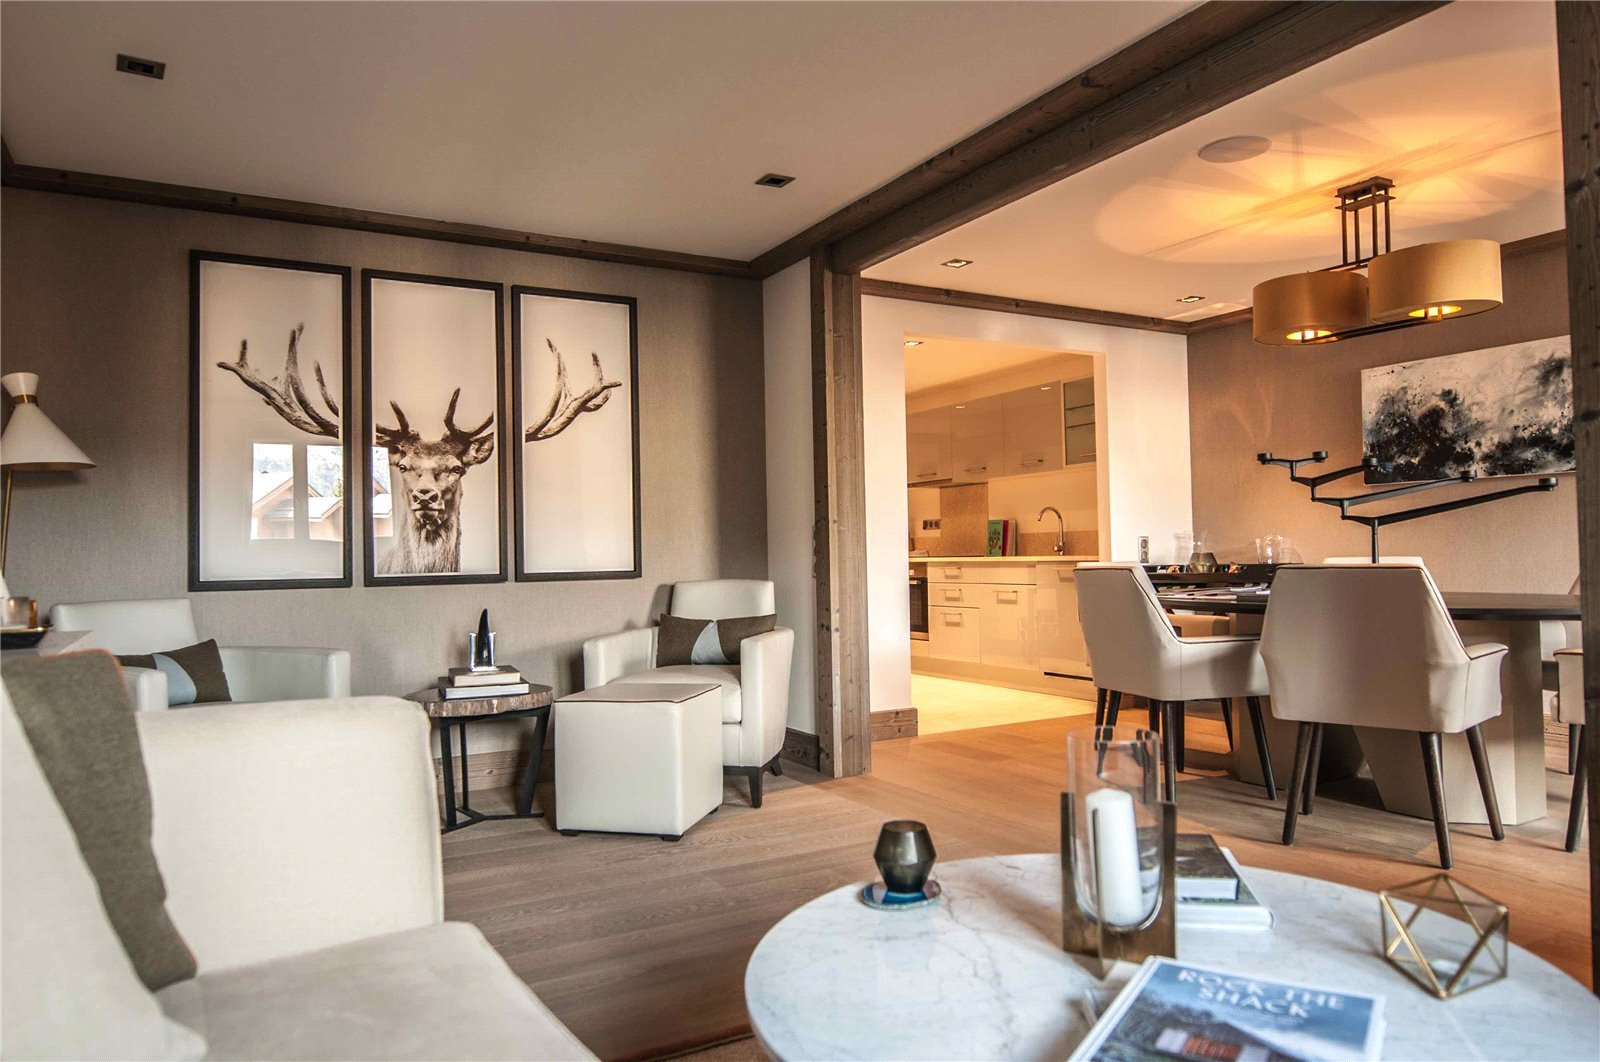 Rental Apartment Courchevel 2 bedroom apartment in Six Senses Residence, located in the centre of the resort and perfectly situated for the ski slopes.